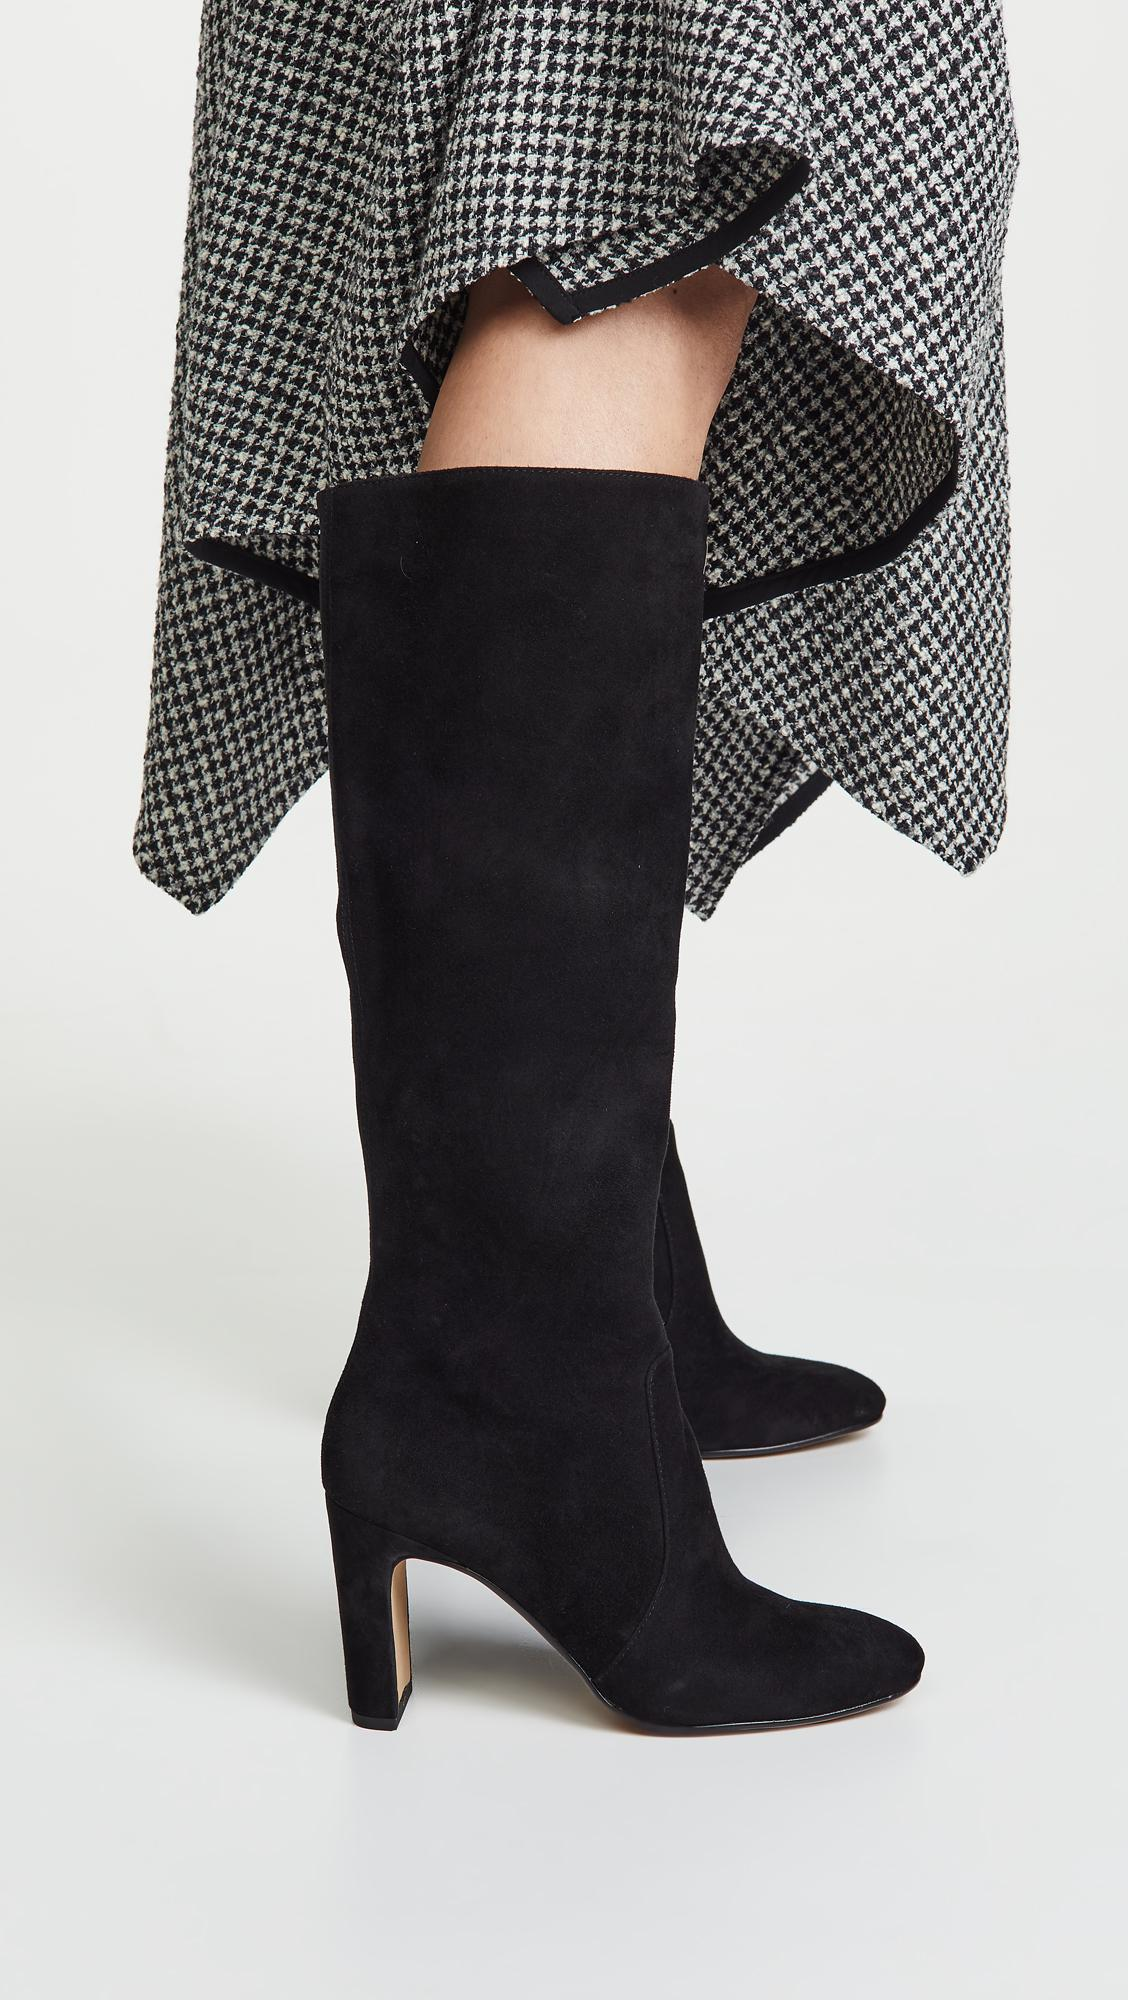 45ad6d6cf79 Dolce Vita Knee High Boots - Best Picture Of Boot Imageco.Org